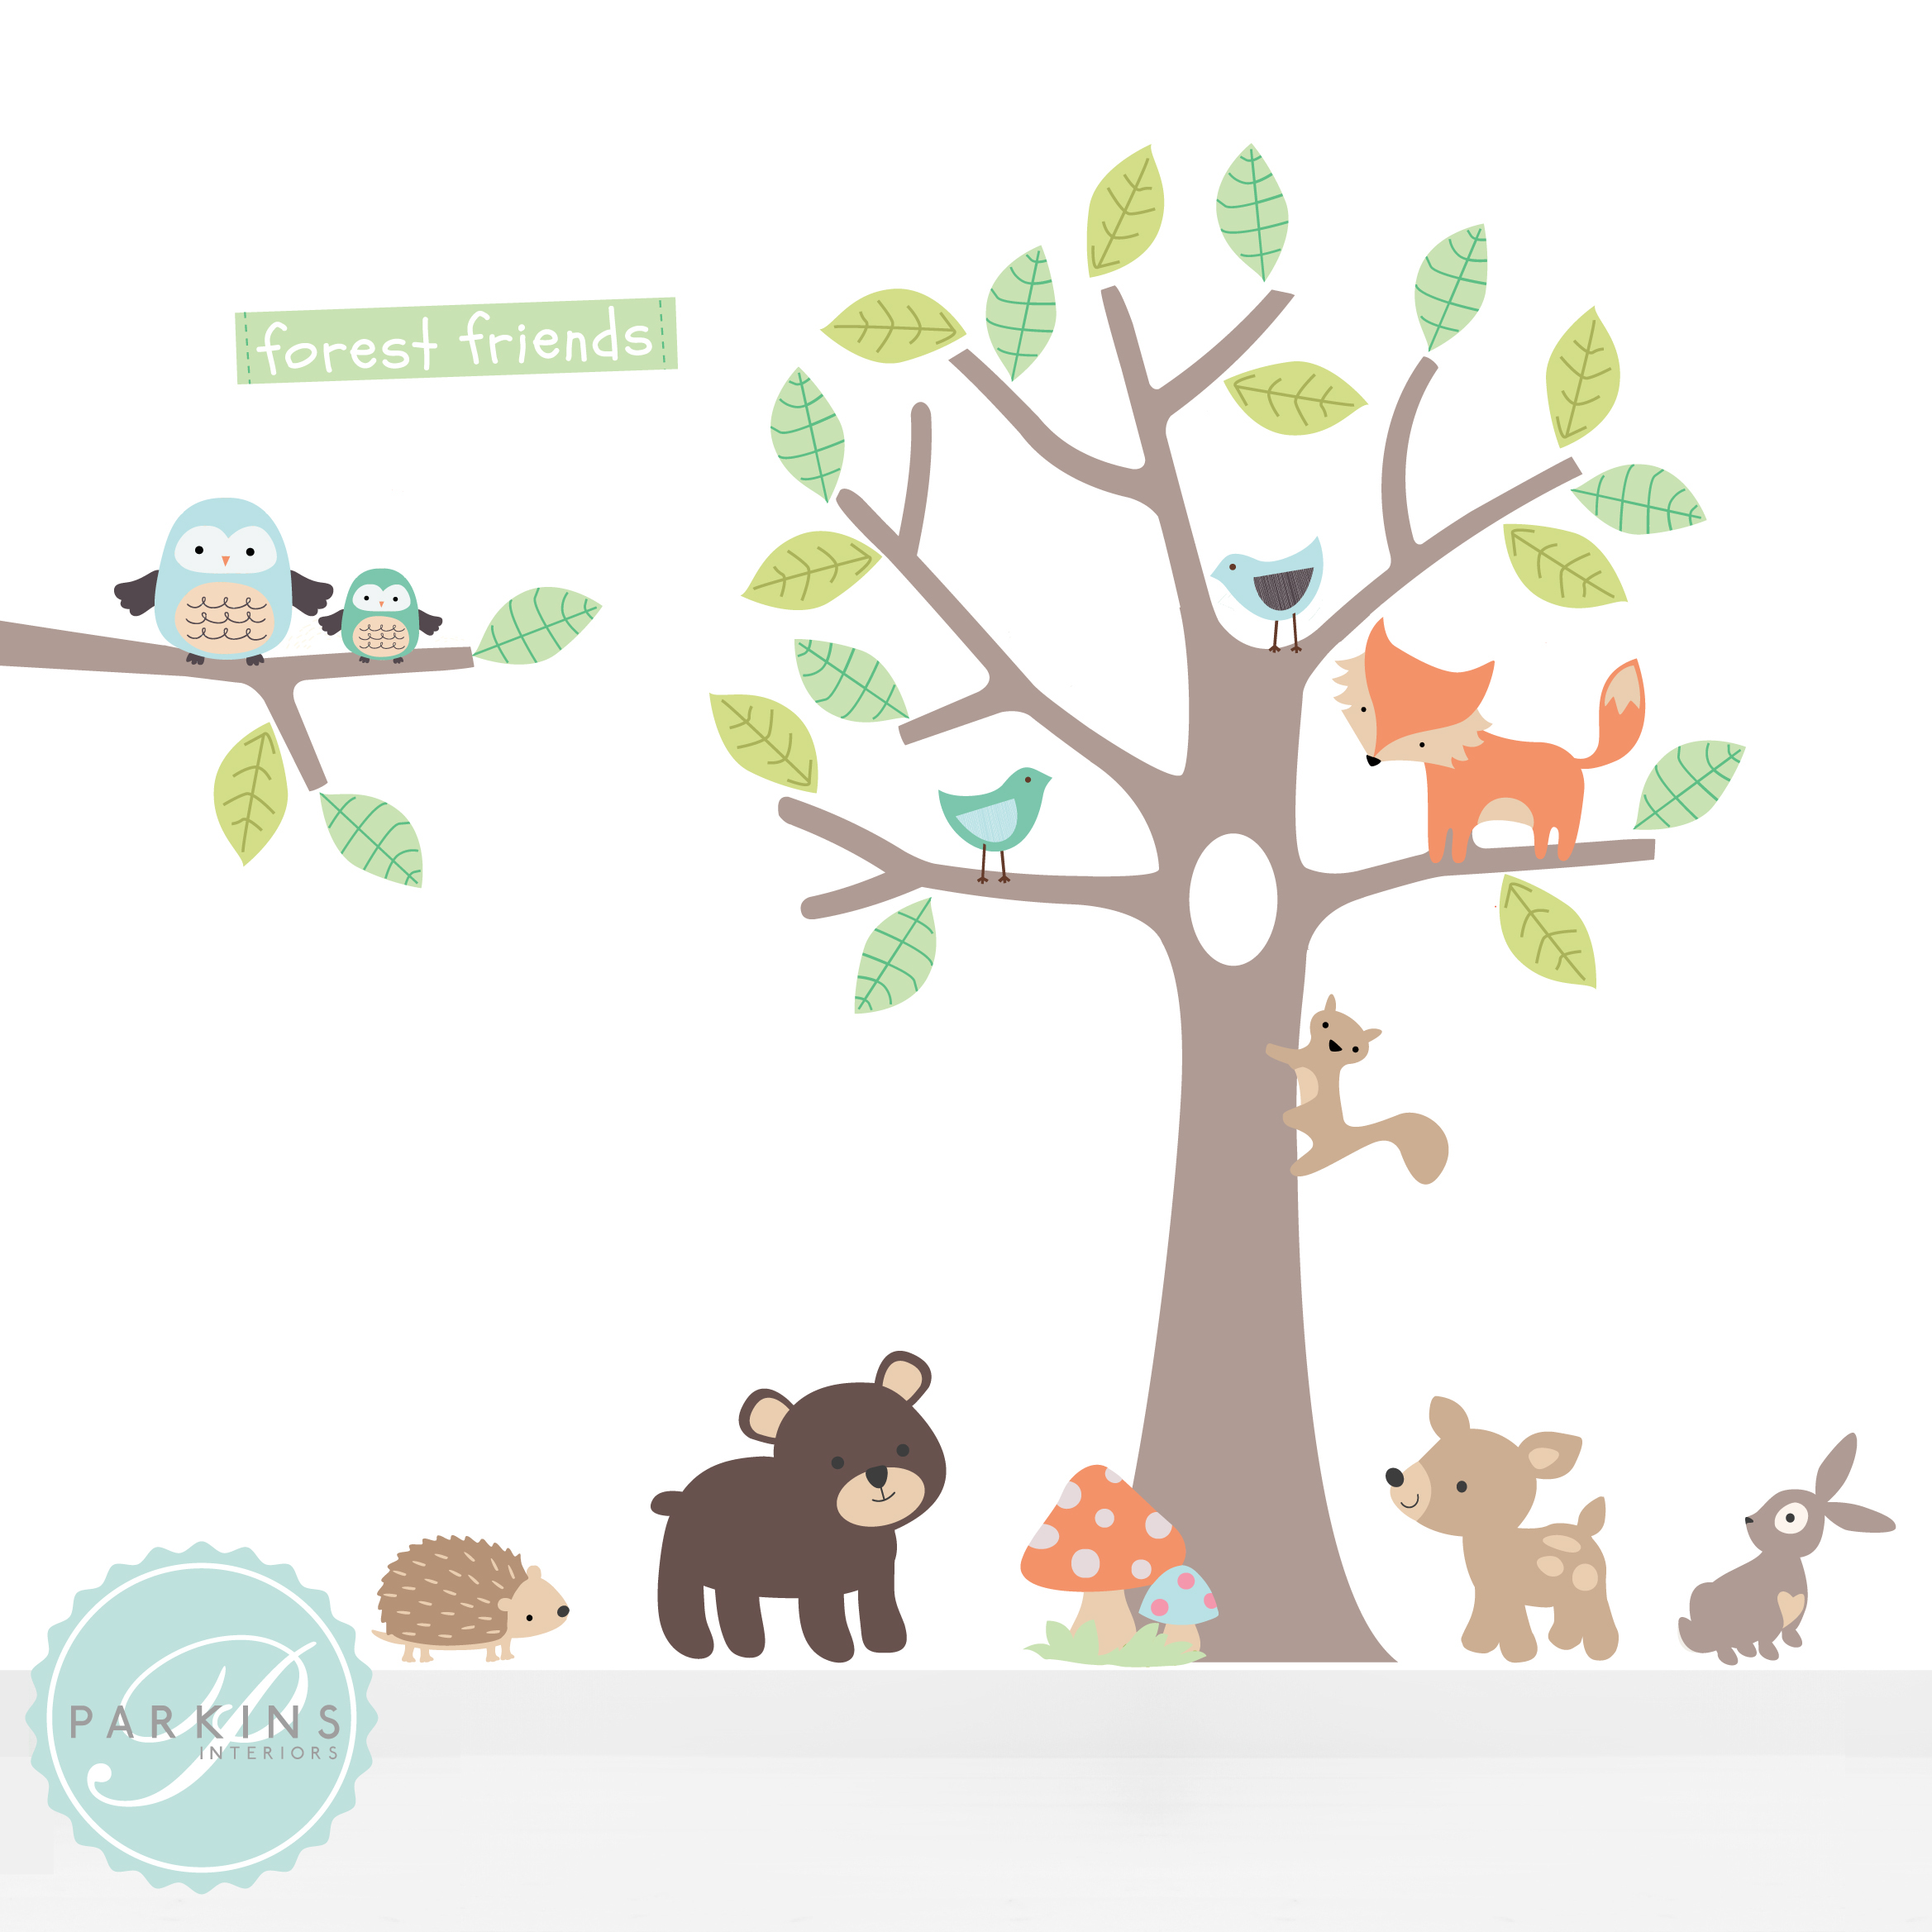 SMGG Parkins Interiors Pastel Forest Friends